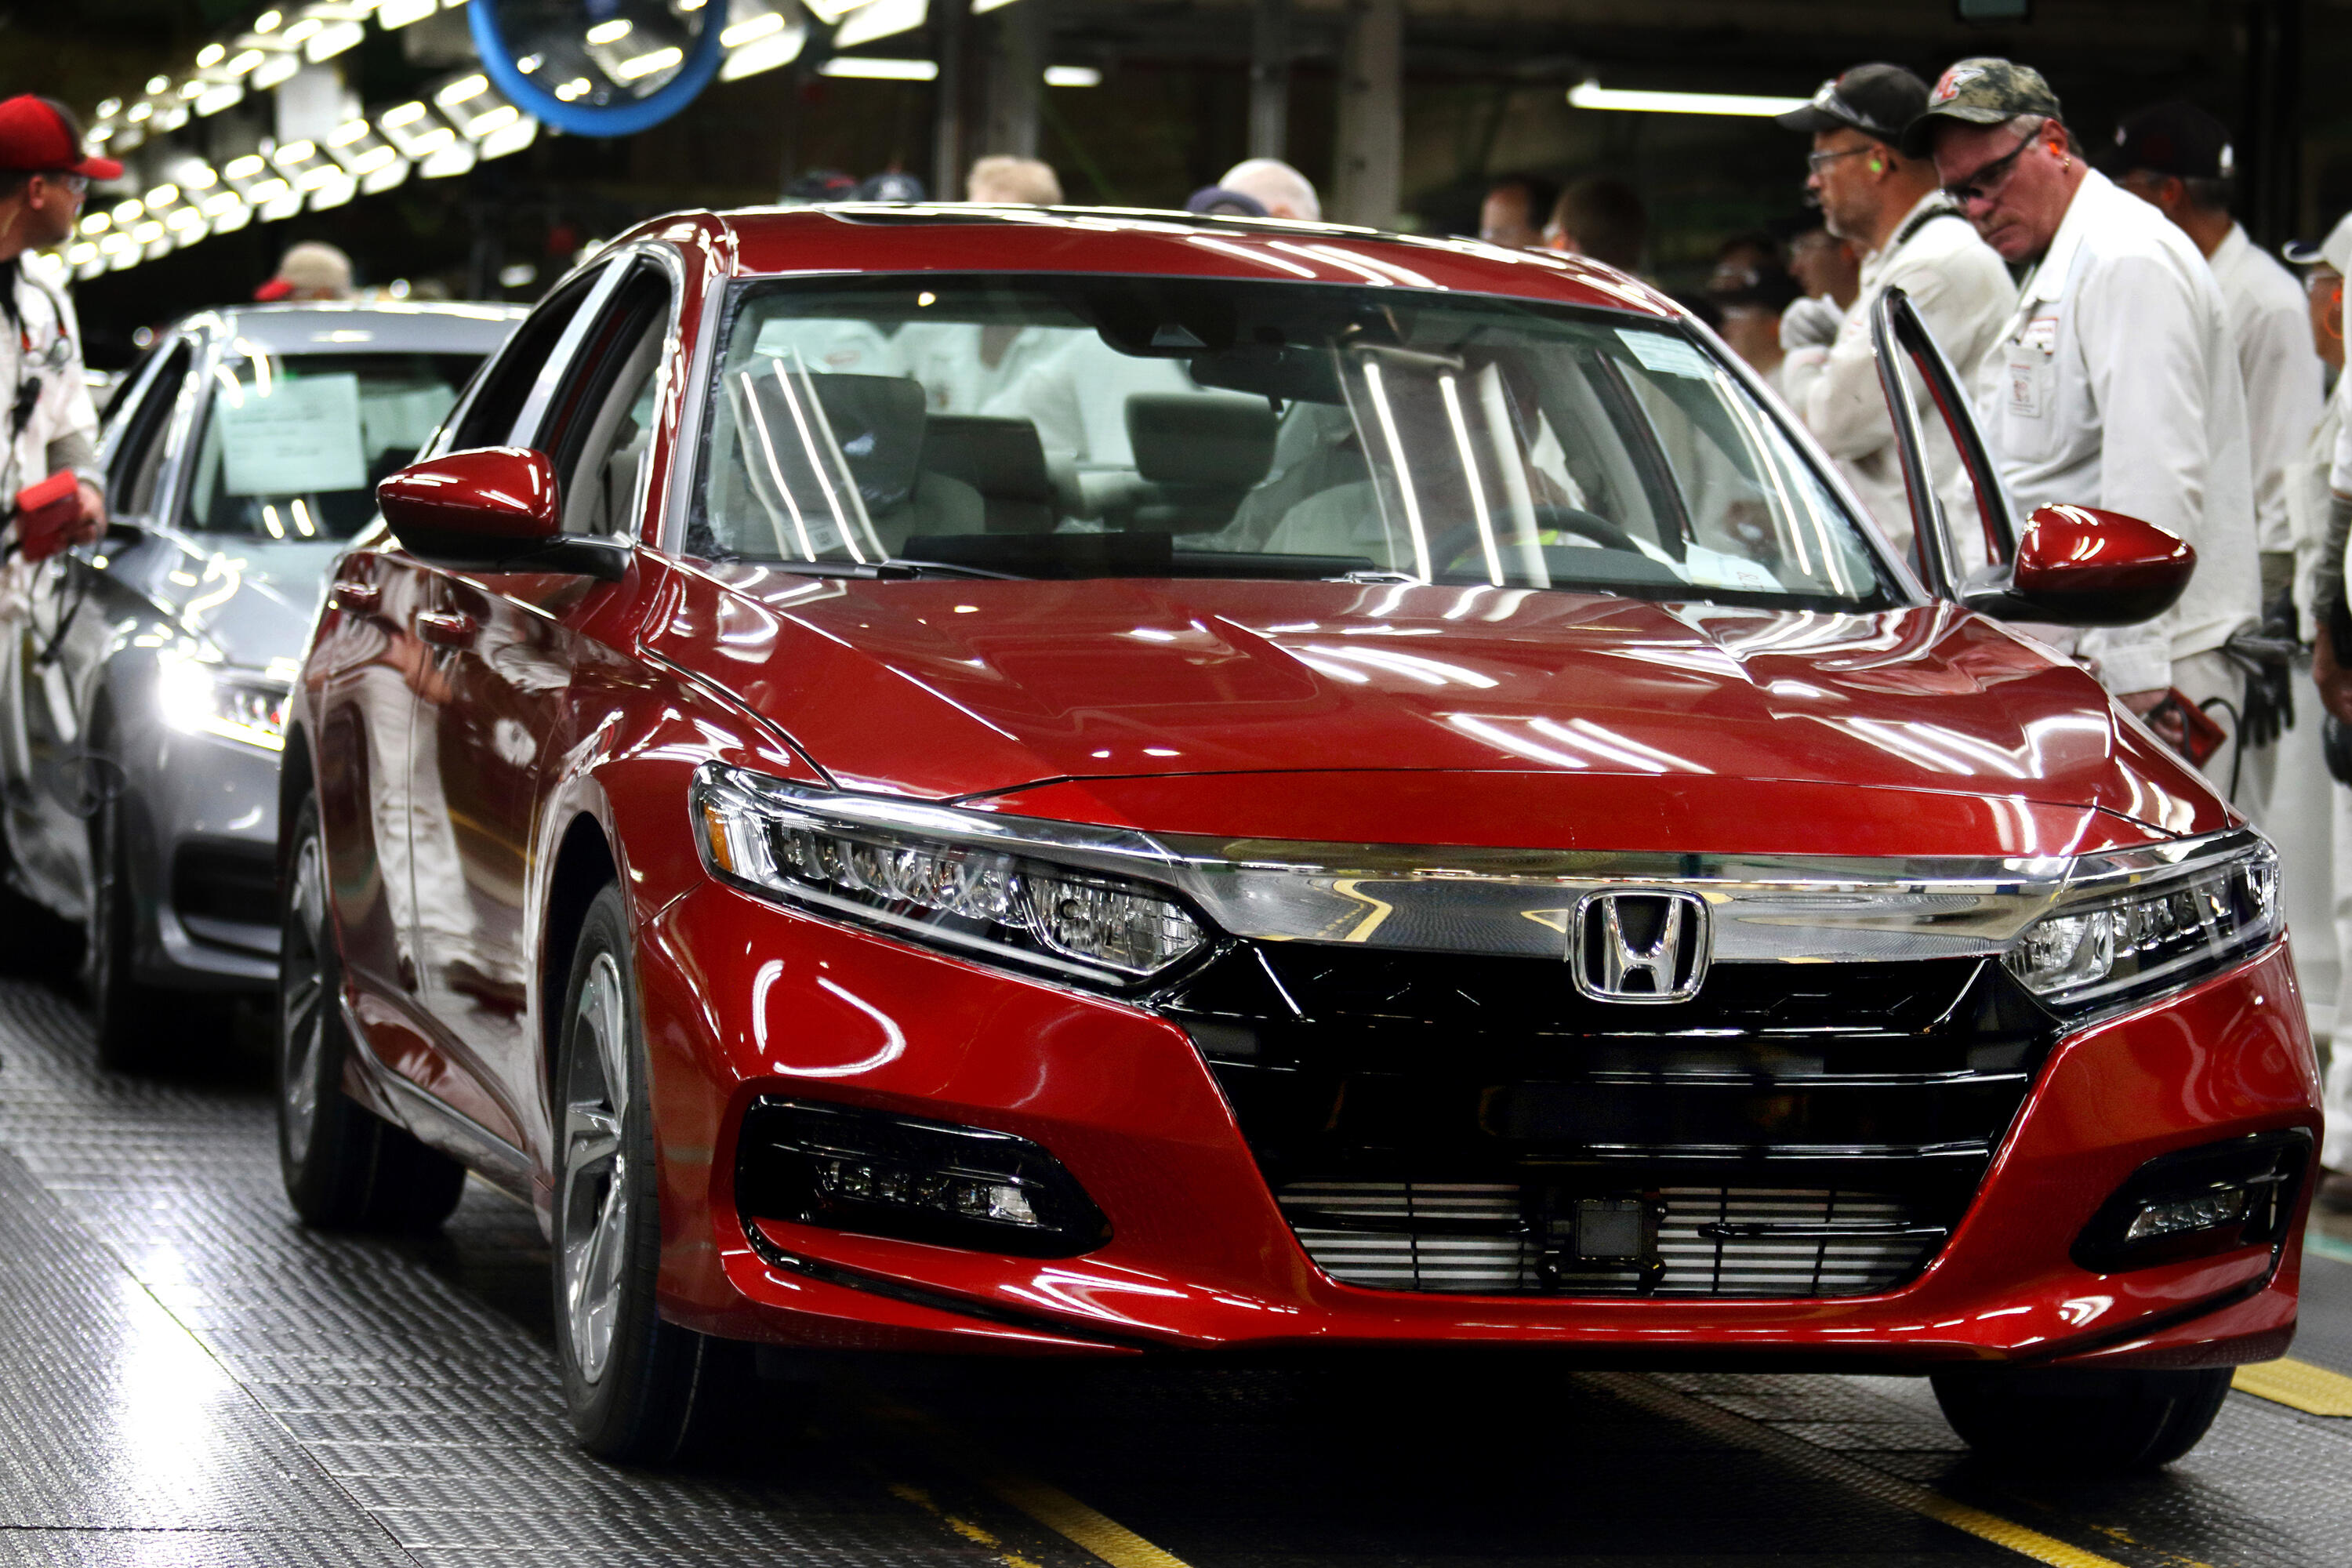 Honda Accord production in Marysville, OH